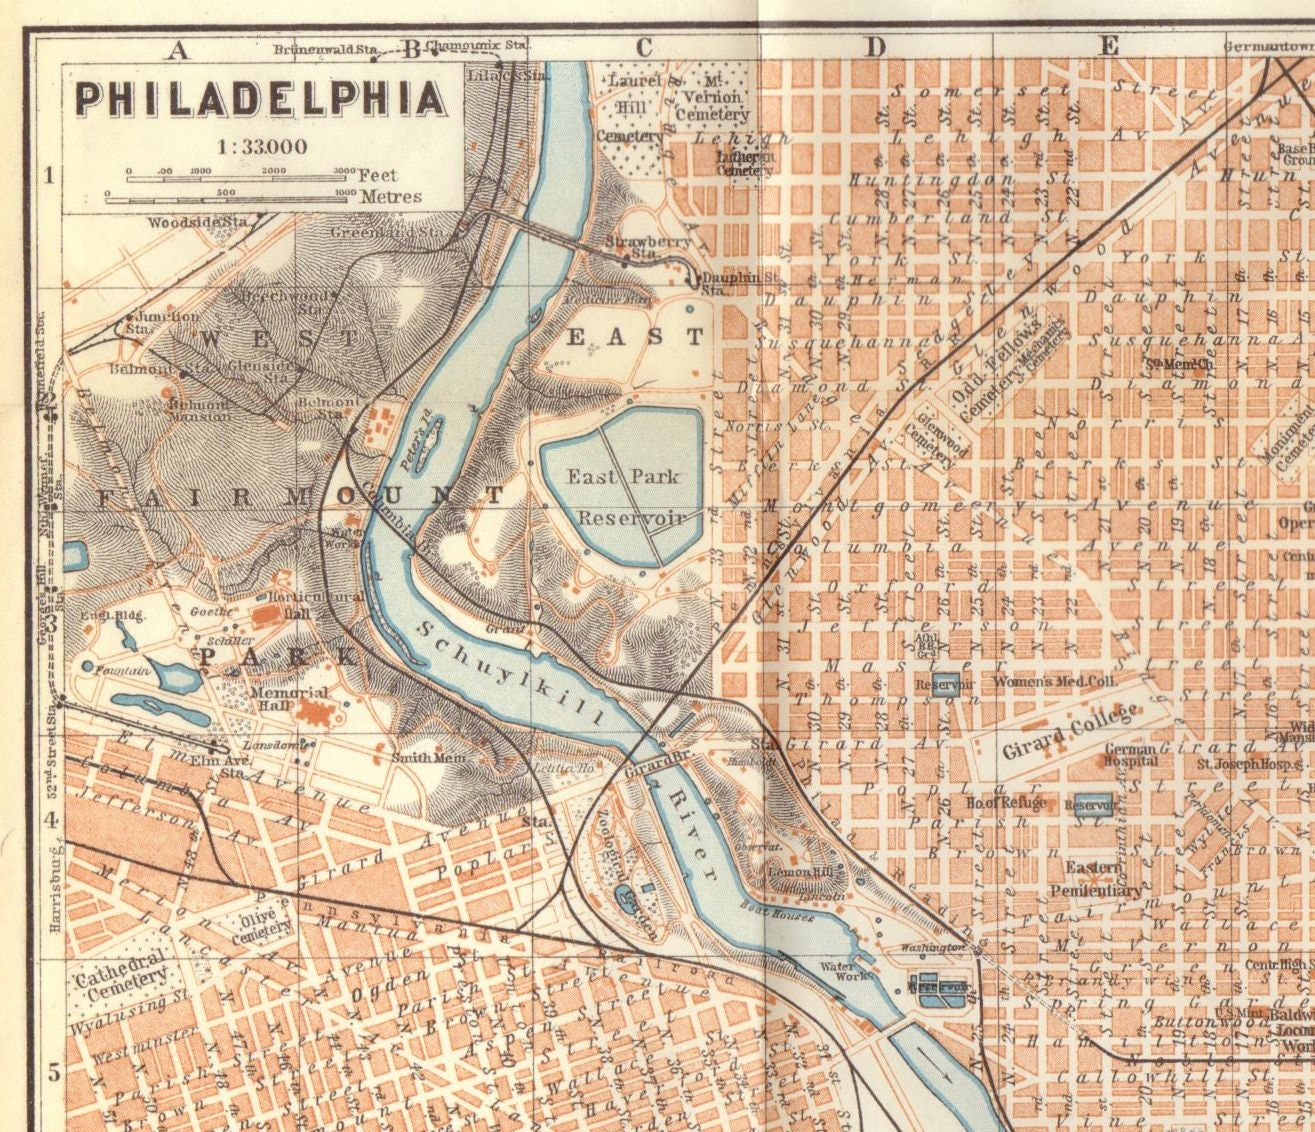 This is a graphic of Printable Map of Philadelphia intended for transportation